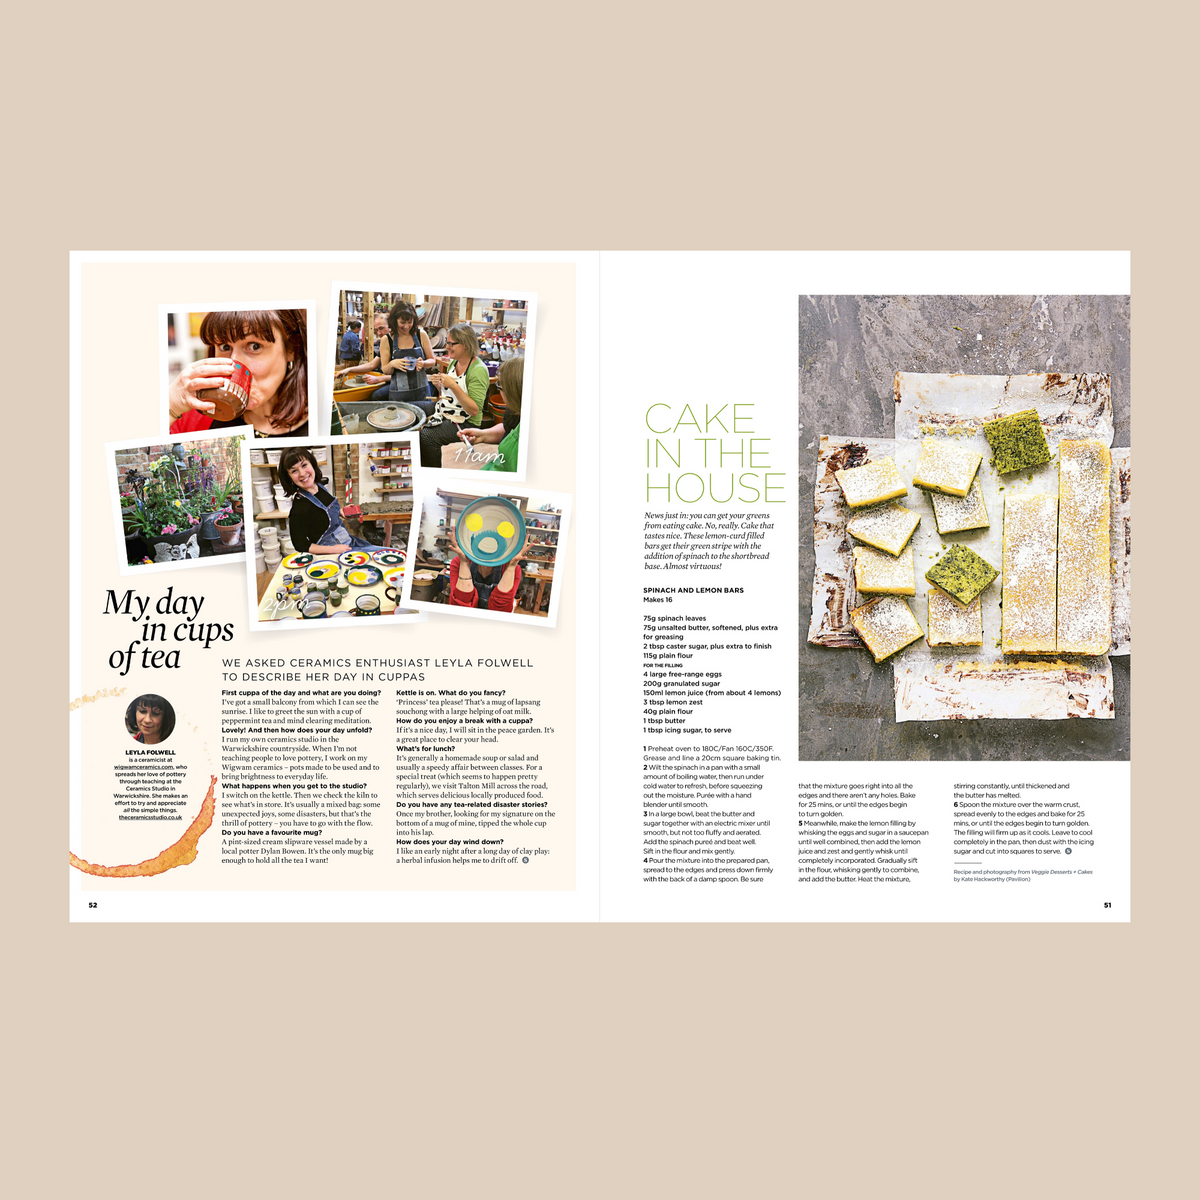 The Simple Things January 2017 (Issue 67)